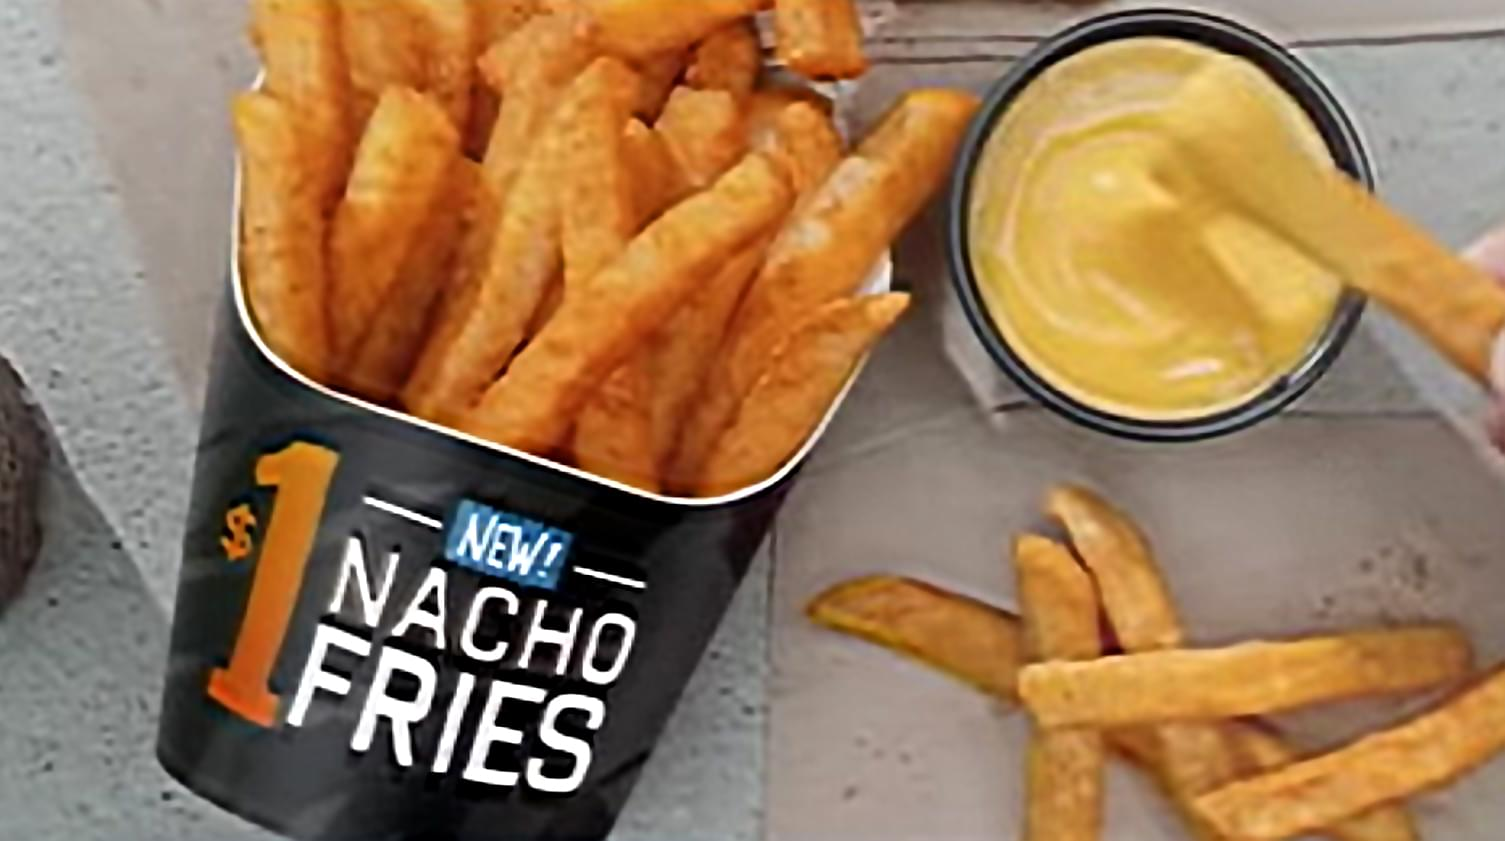 Taco Bell brings back popular nacho fries